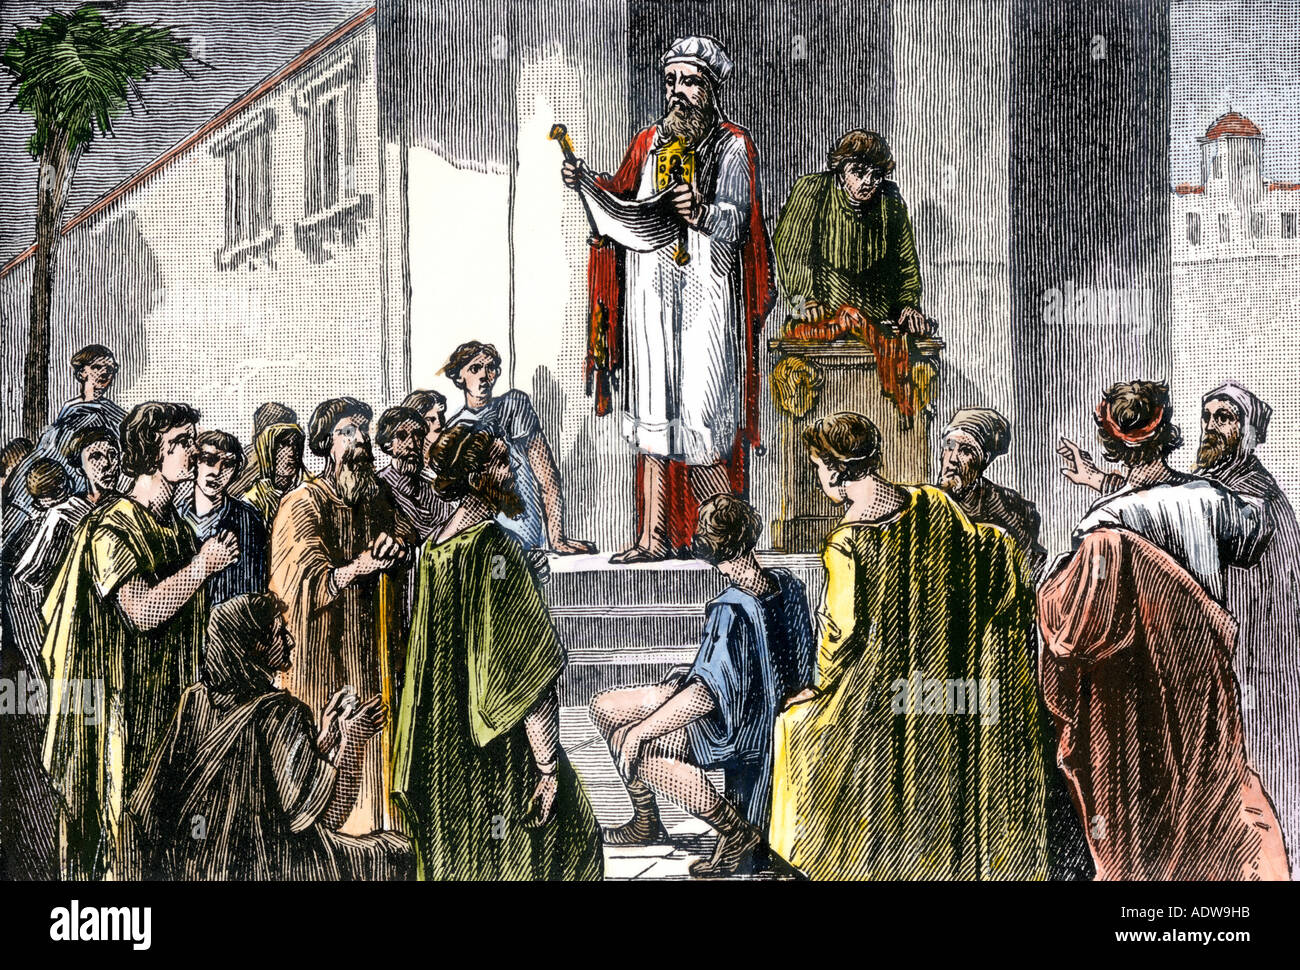 Proclamation read from a scroll in ancient Jerusalem. Hand-colored woodcut - Stock Image